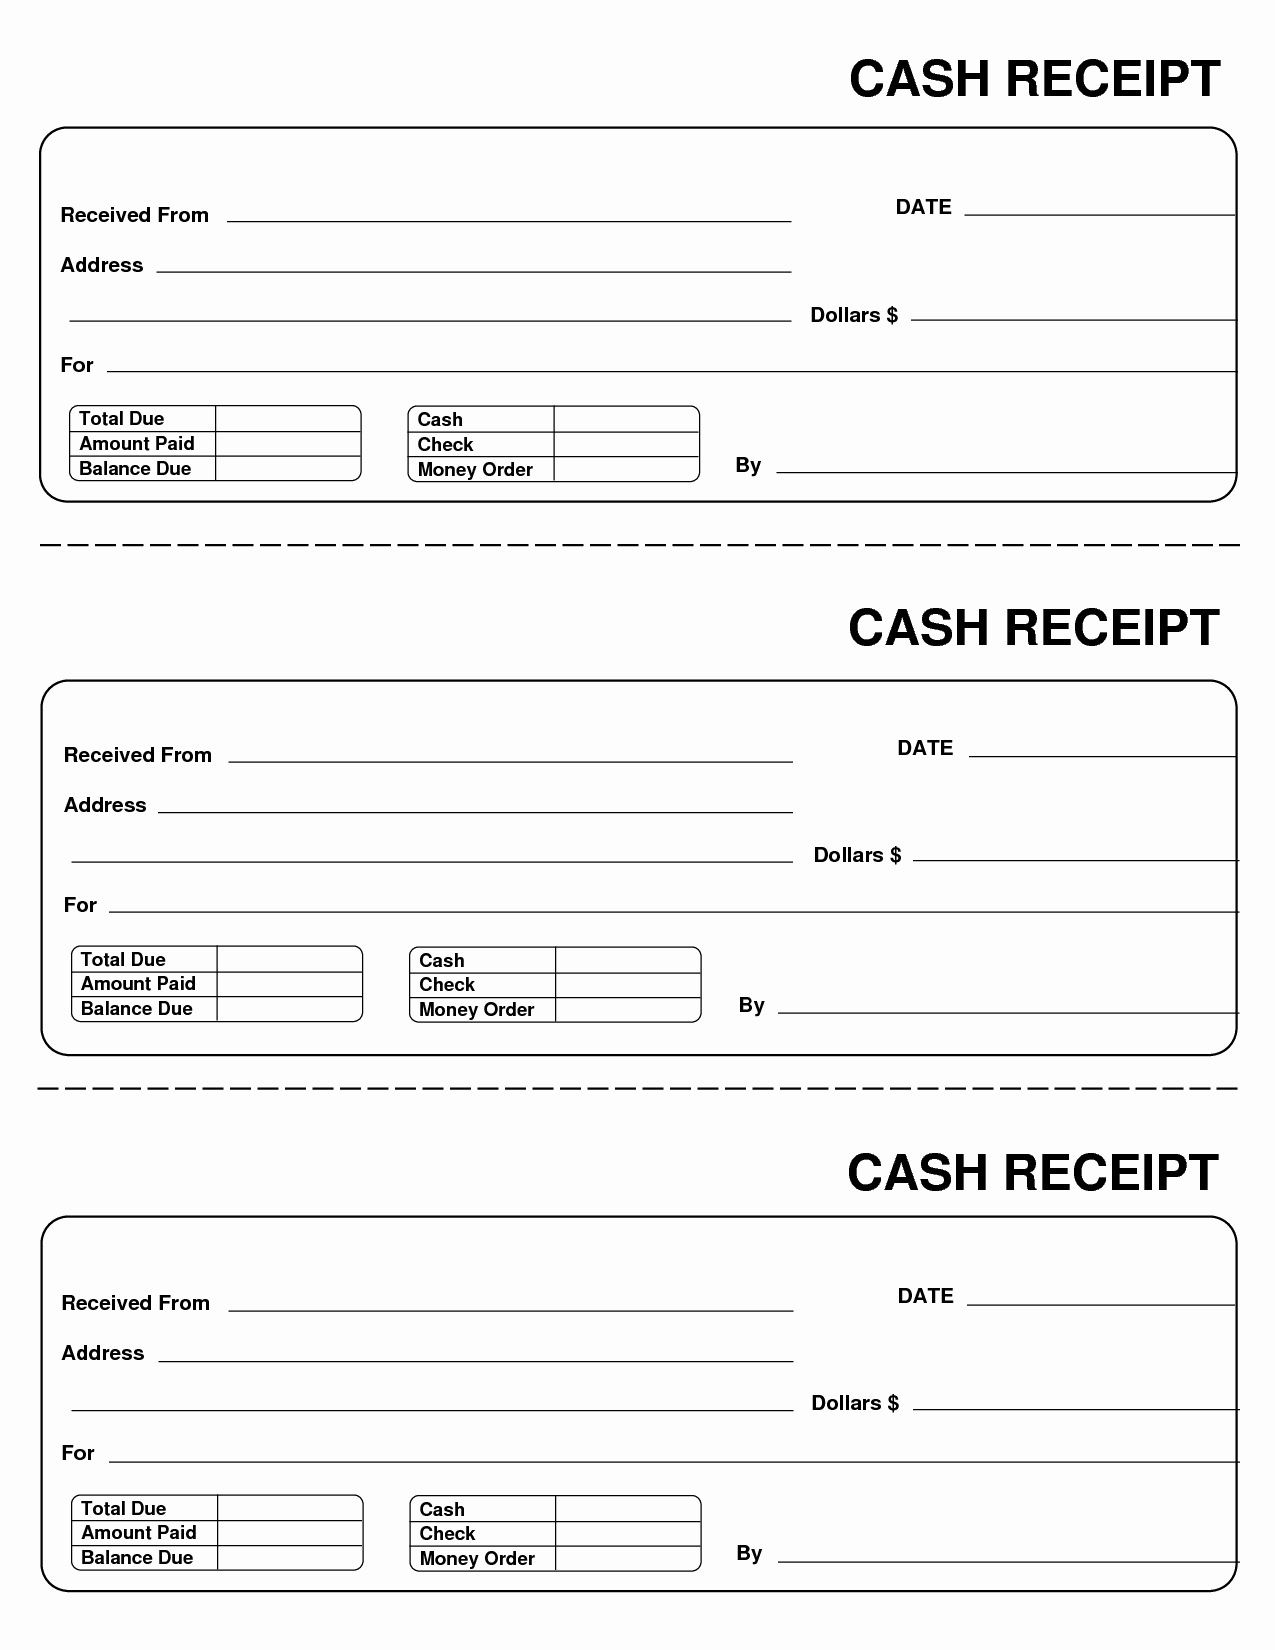 Free Printable Cash Receipt Template Best Of Free Printable Small Cash Receipt Template and form Sample